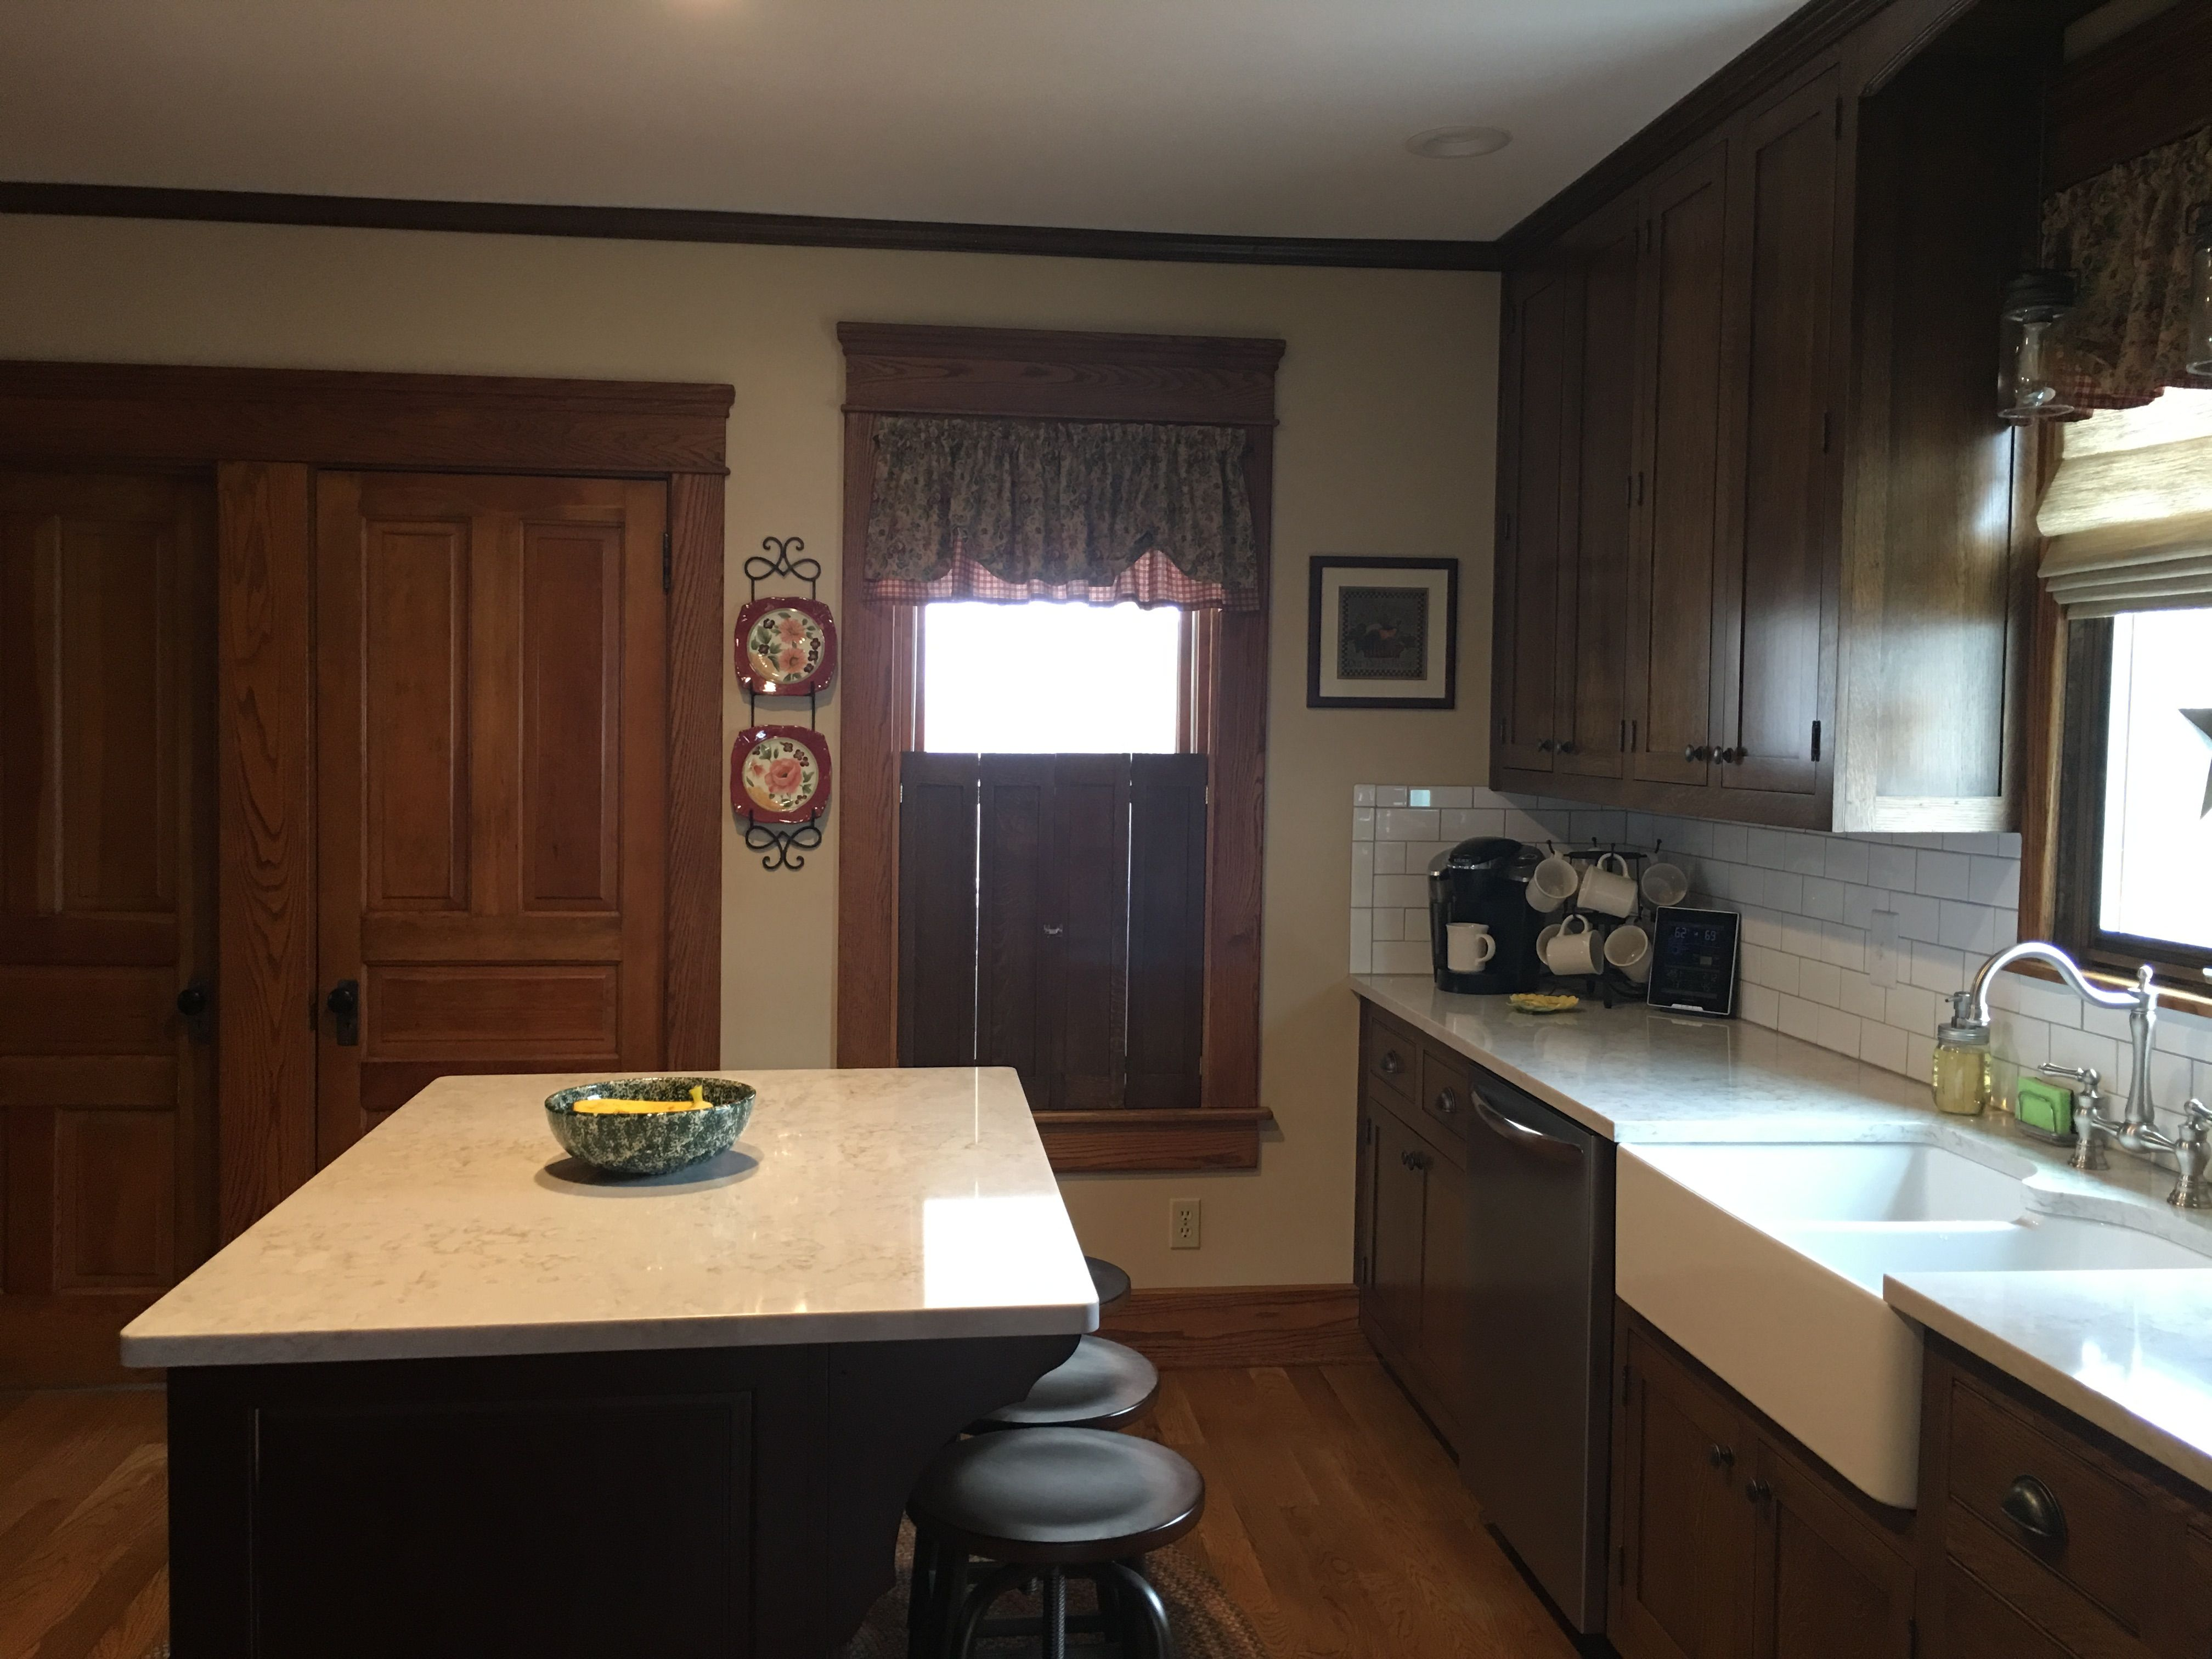 Cabinets Quarter Sawn White Oak With Minwax Espresso Stain Floor Is White Oak With Bona Nutmeg Stain Oth Building Kitchen Cabinets Kitchen Cabinets Kitchen